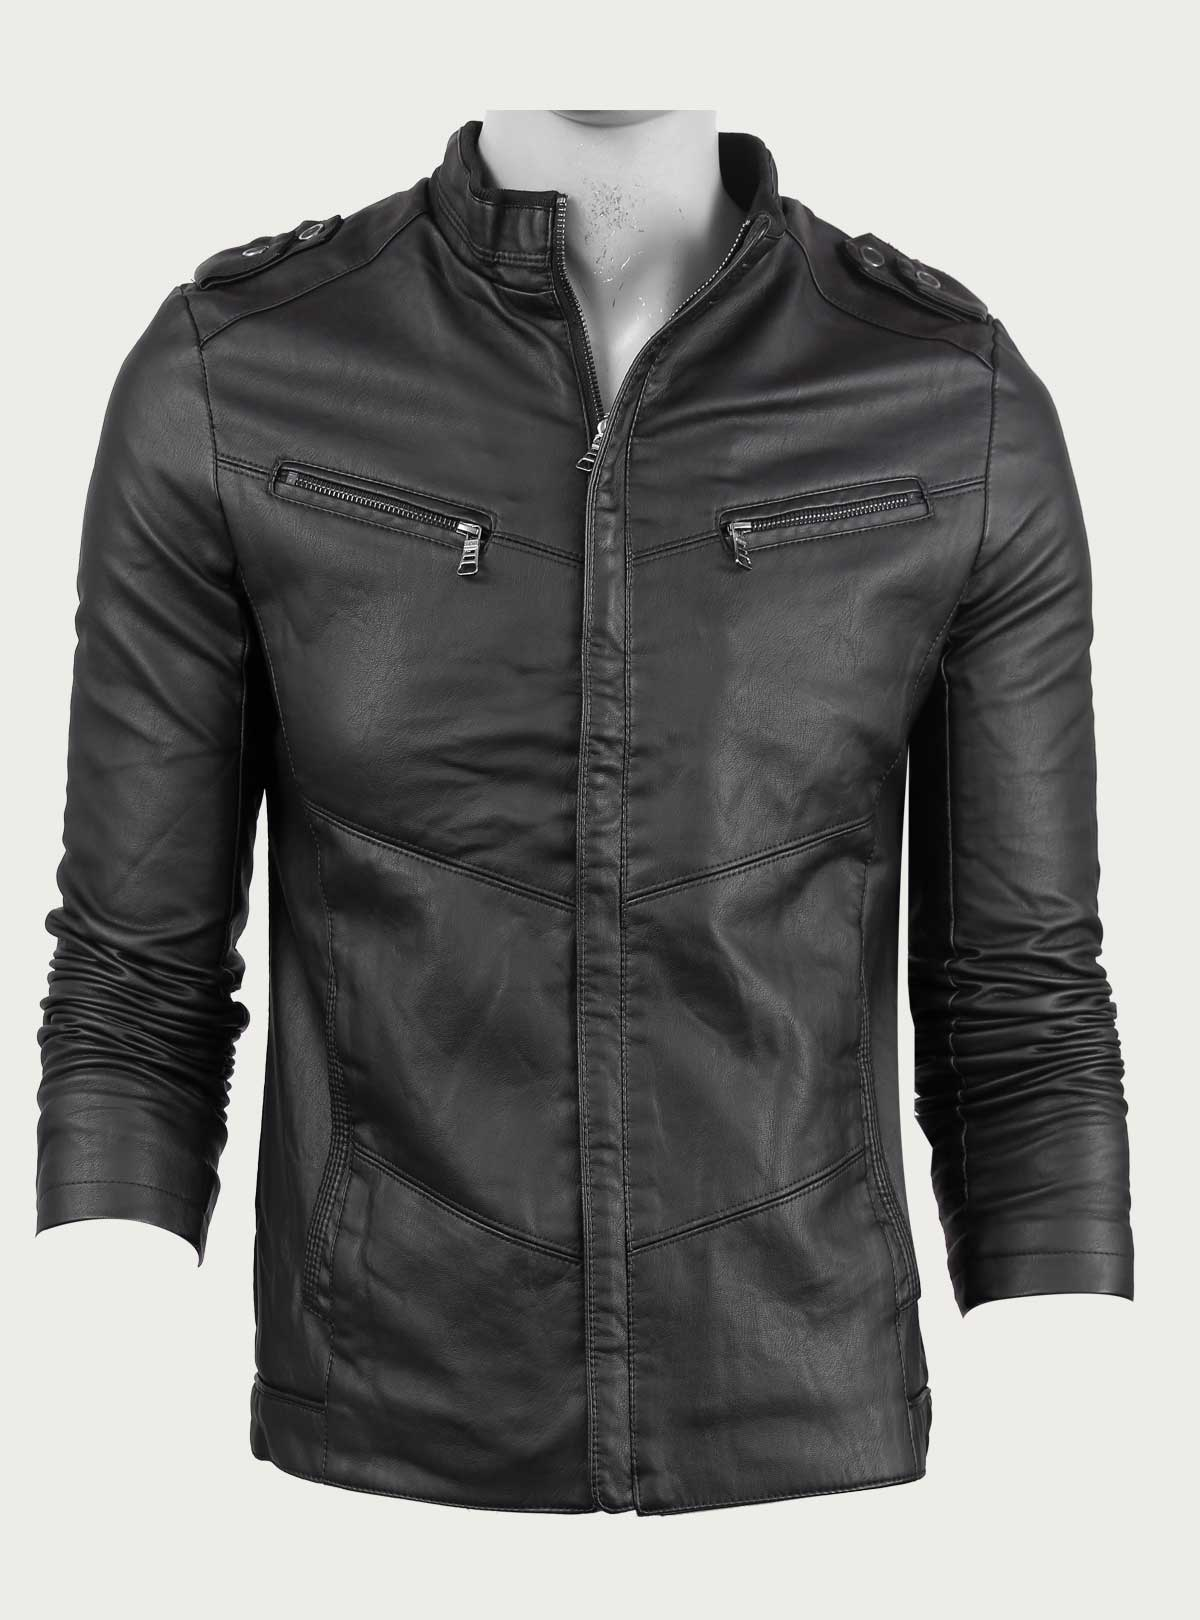 Faux Leather Jacket Esho Com Best Online Shopping In Bangladesh